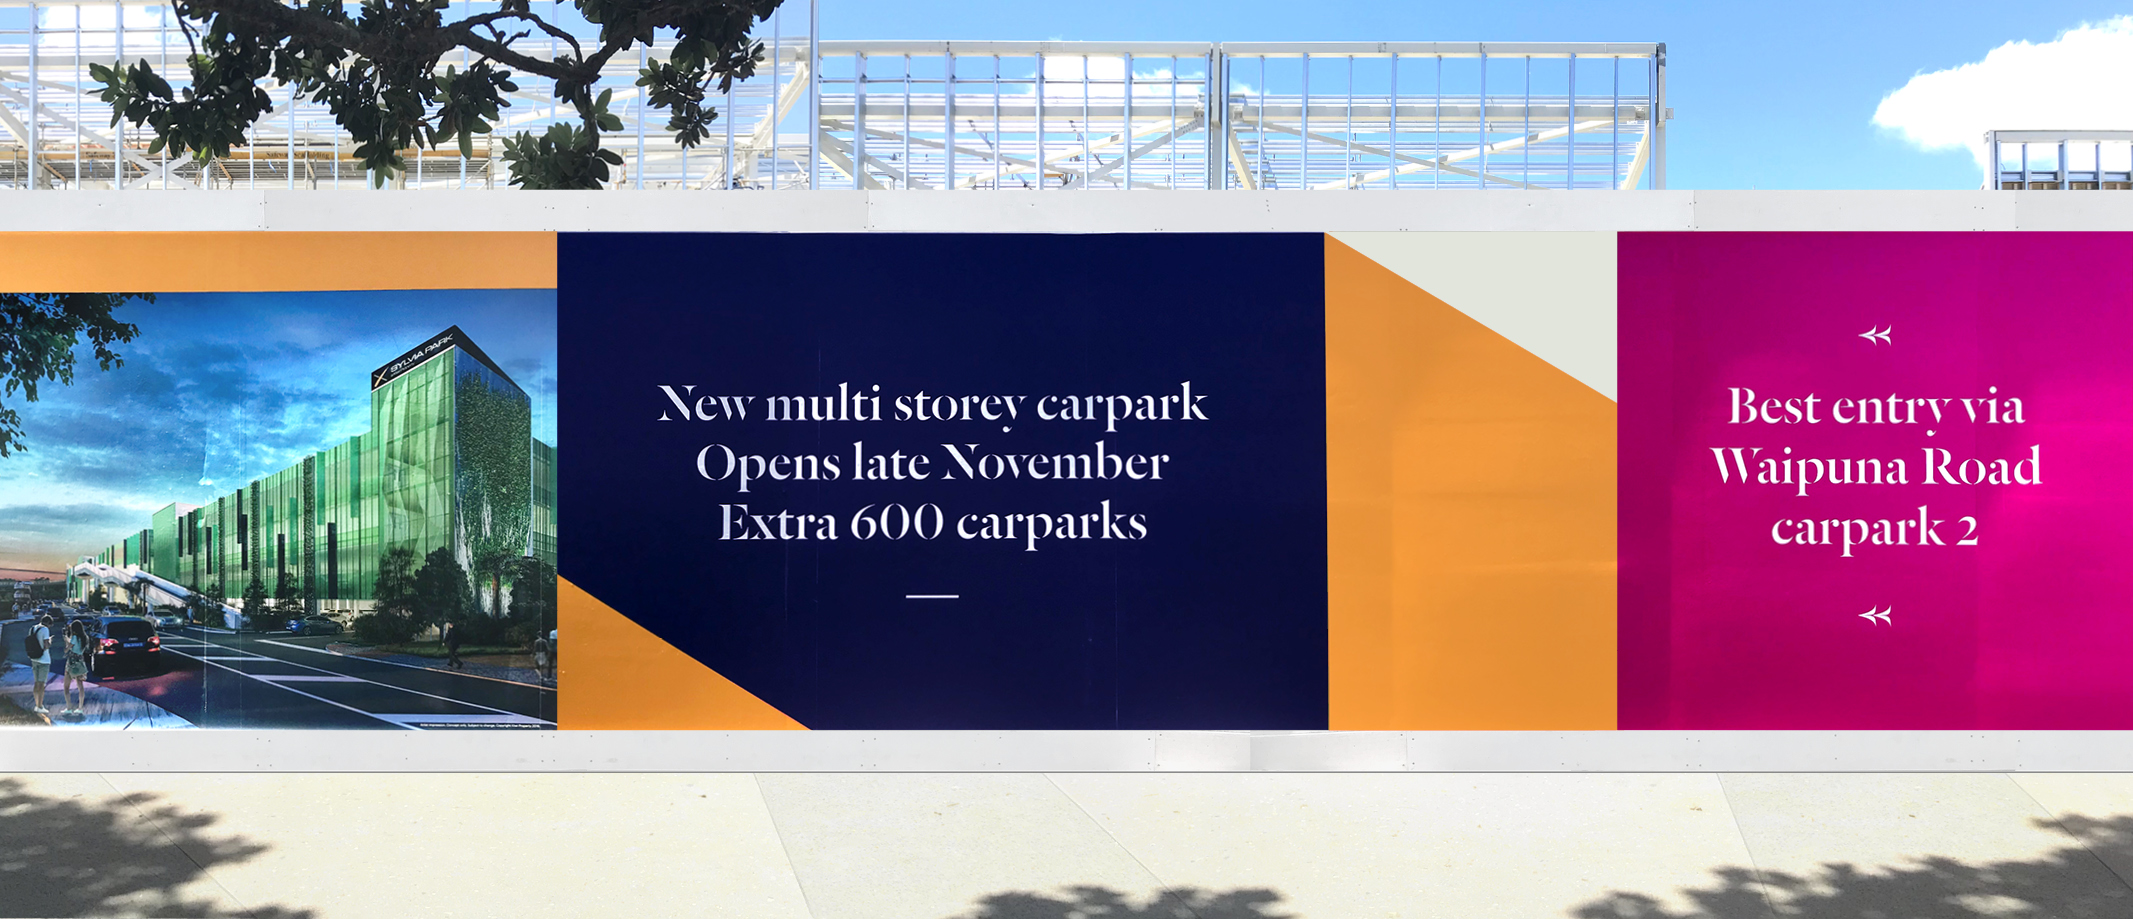 Close up of eye catching and sophisticated hoarding series for Sylvia Park Mall featuring artist's impression of new carpark building and directional messaging